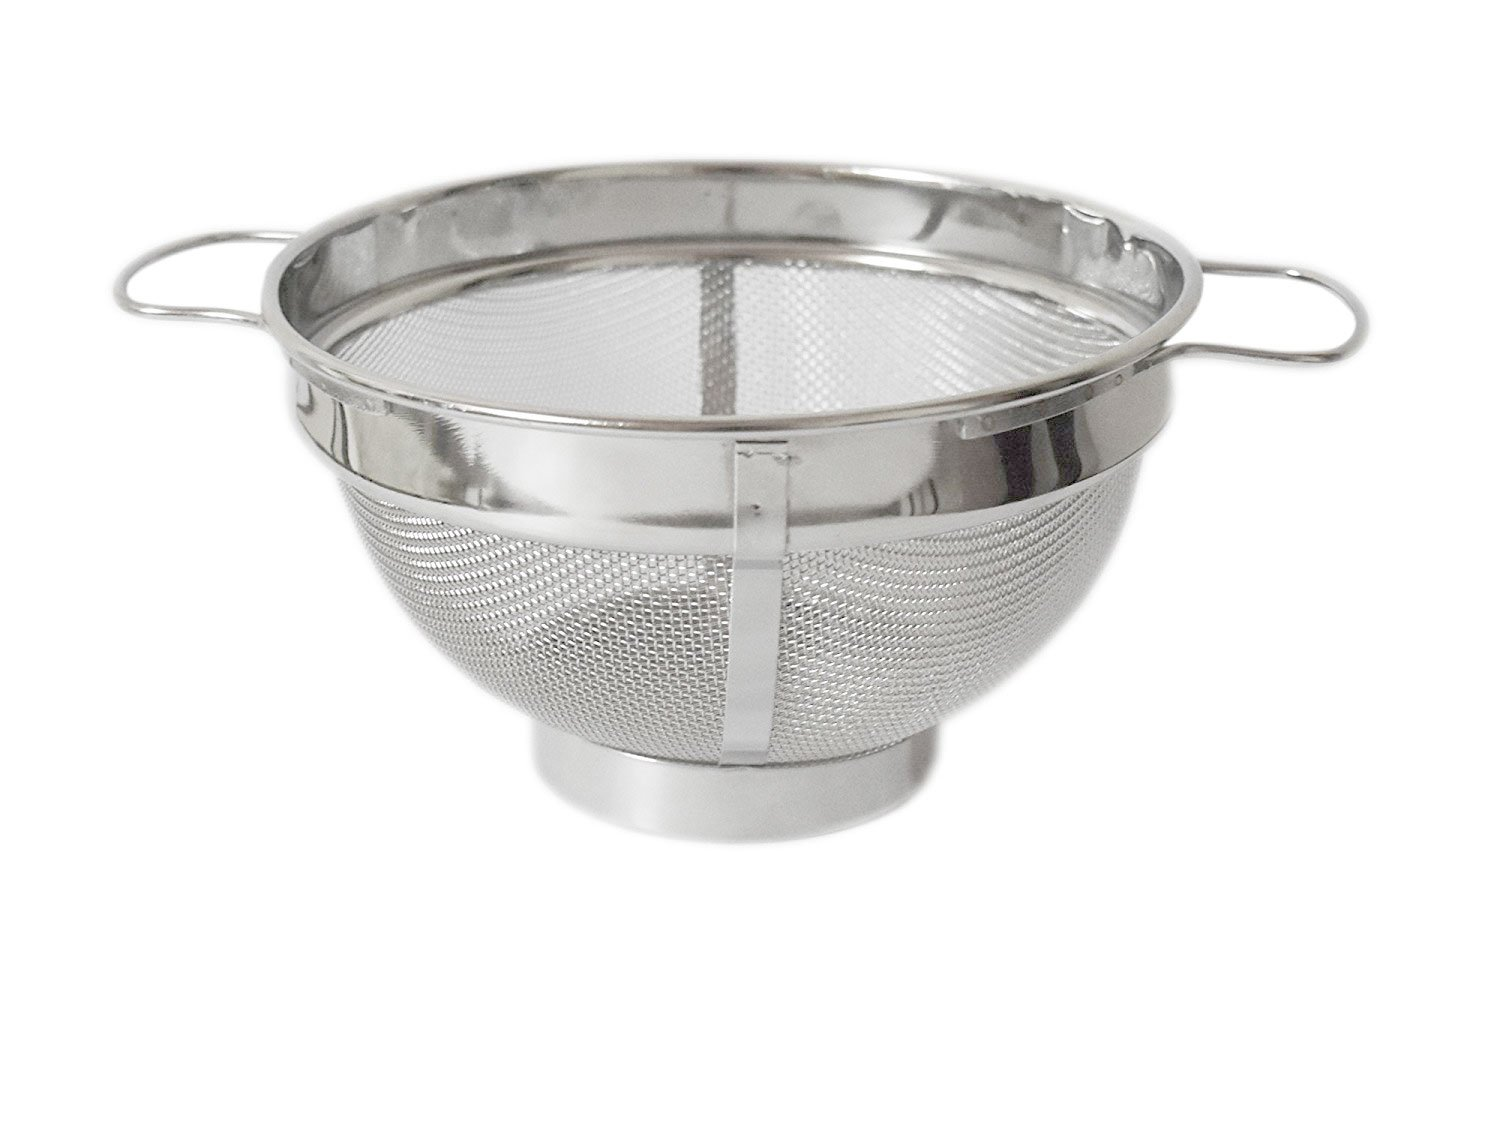 Duggu Palace Heavy Duty Stainless Steel Colander, Deep Colander, Steel Colander with Handle, 7.8 Inch, 5 Quart, Made in India